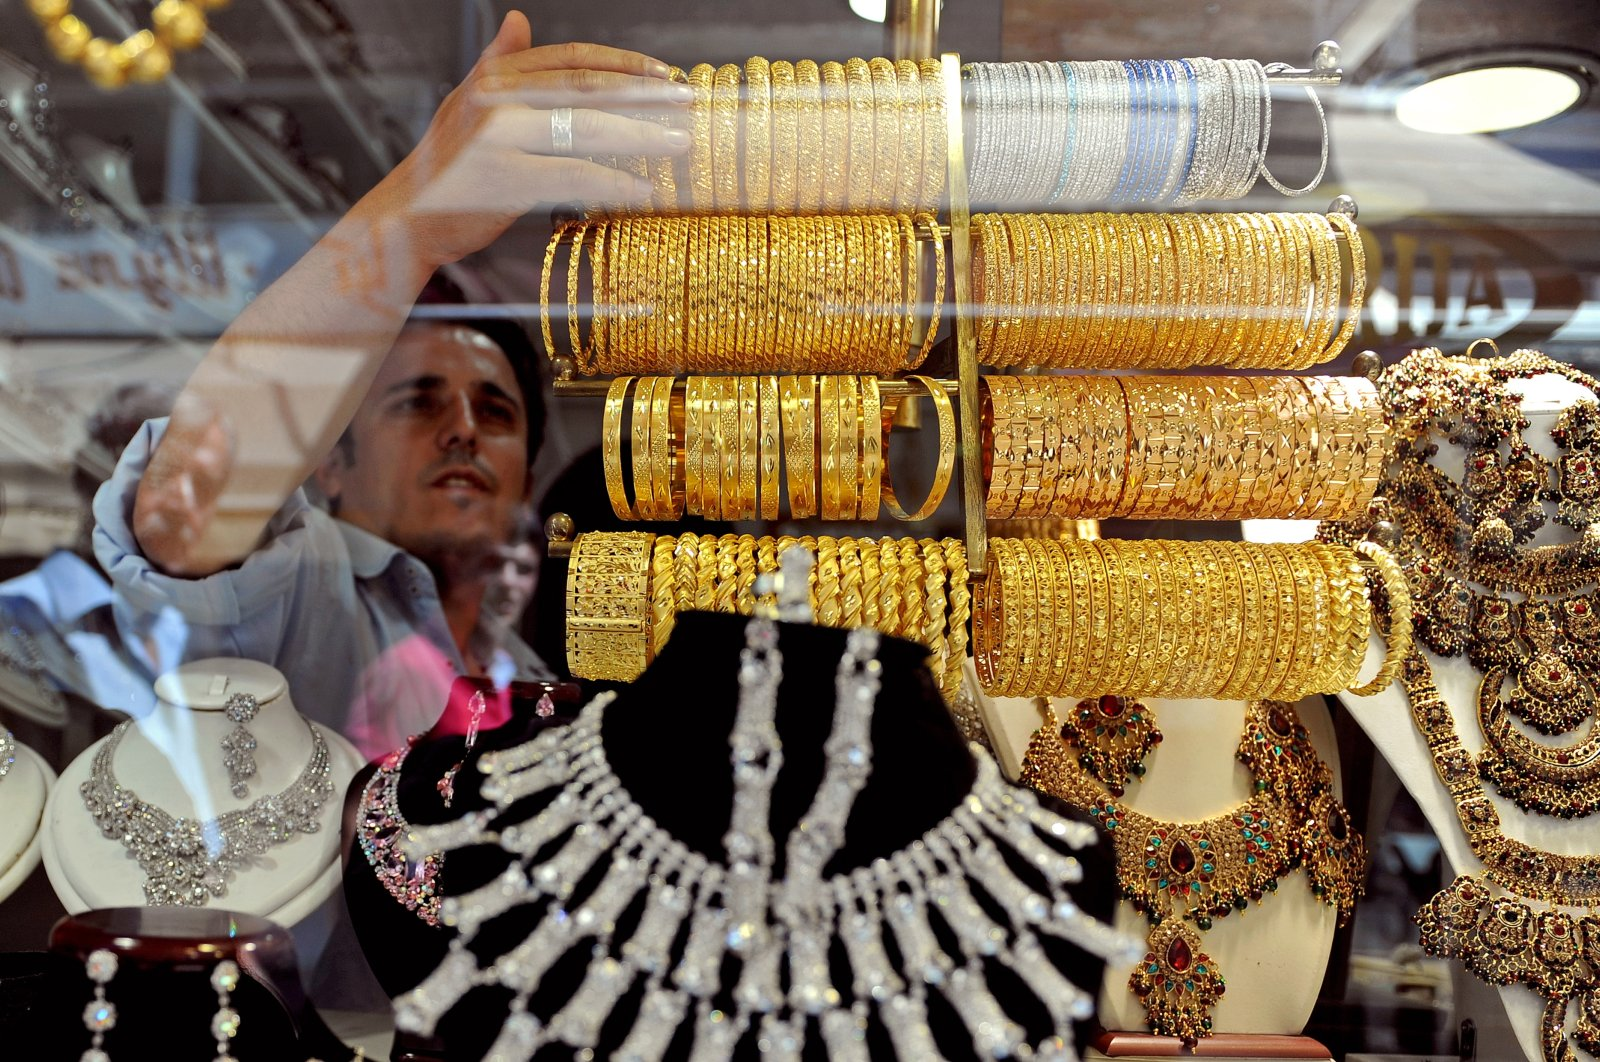 A jewelry worker sets up his shop showcase in one of the many gold jewelry shops in the old Turkish bazaar in Skopje, North Macedonia, Aug. 19, 2011. (EPA Photo)